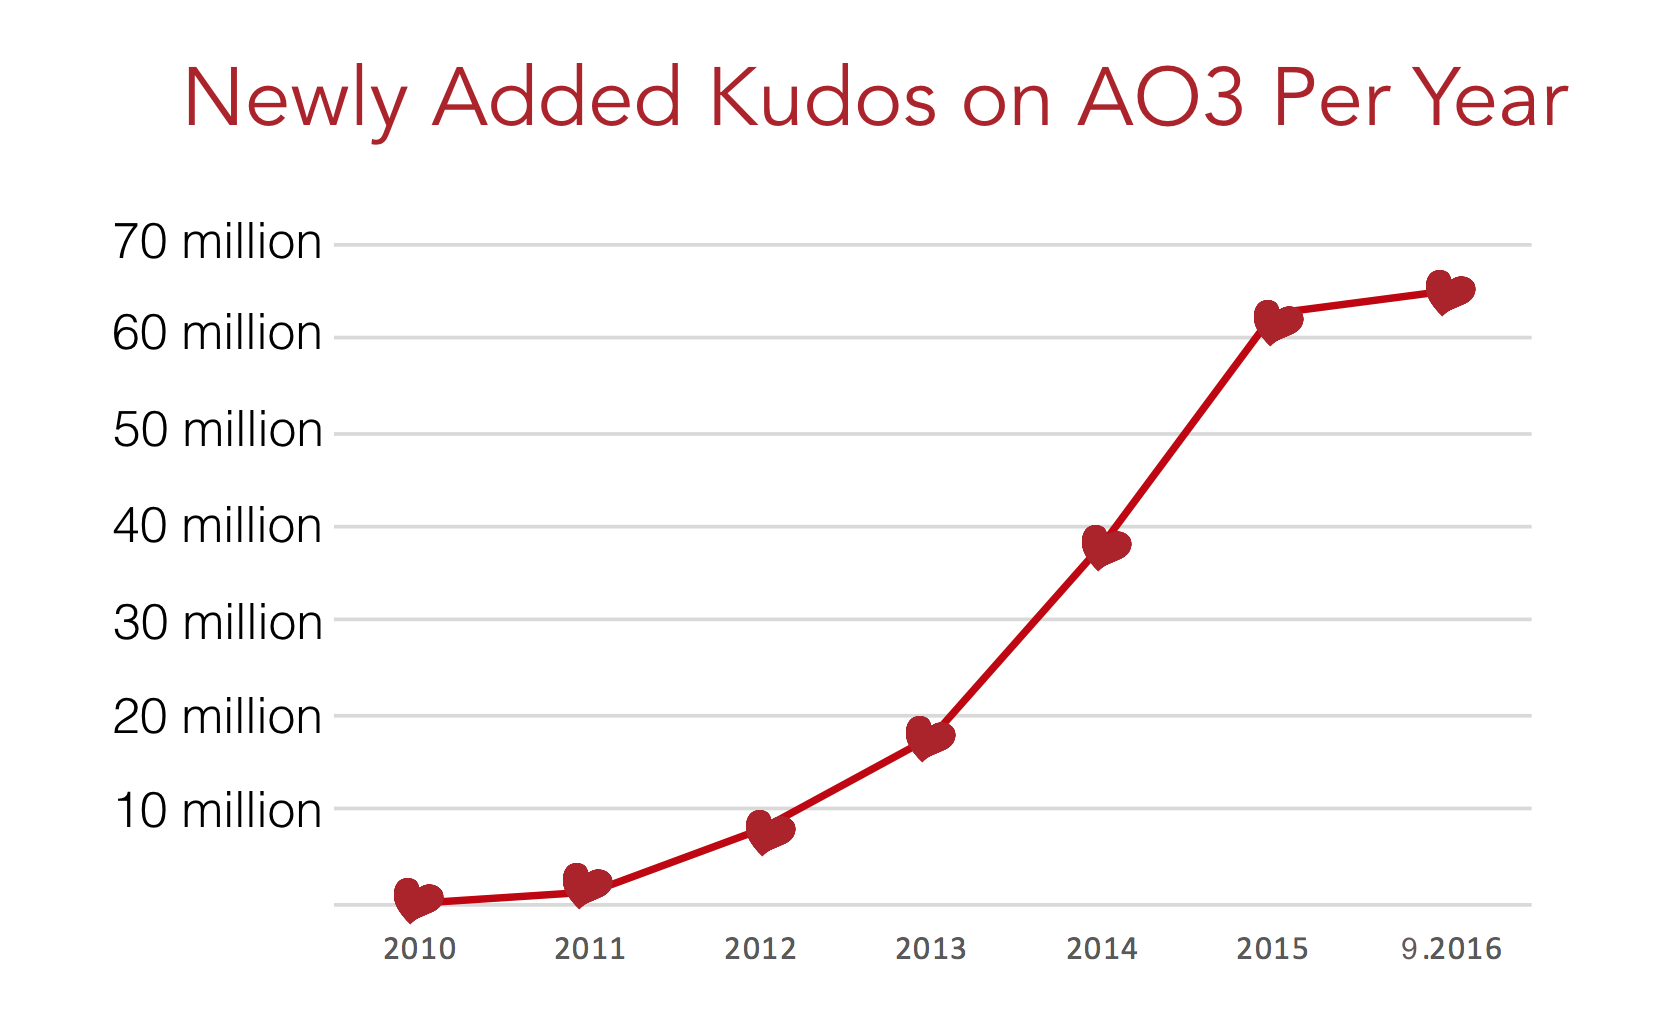 Kudos growth graph on AO3, from zero in 2010 to over 60 million as of September 2016.